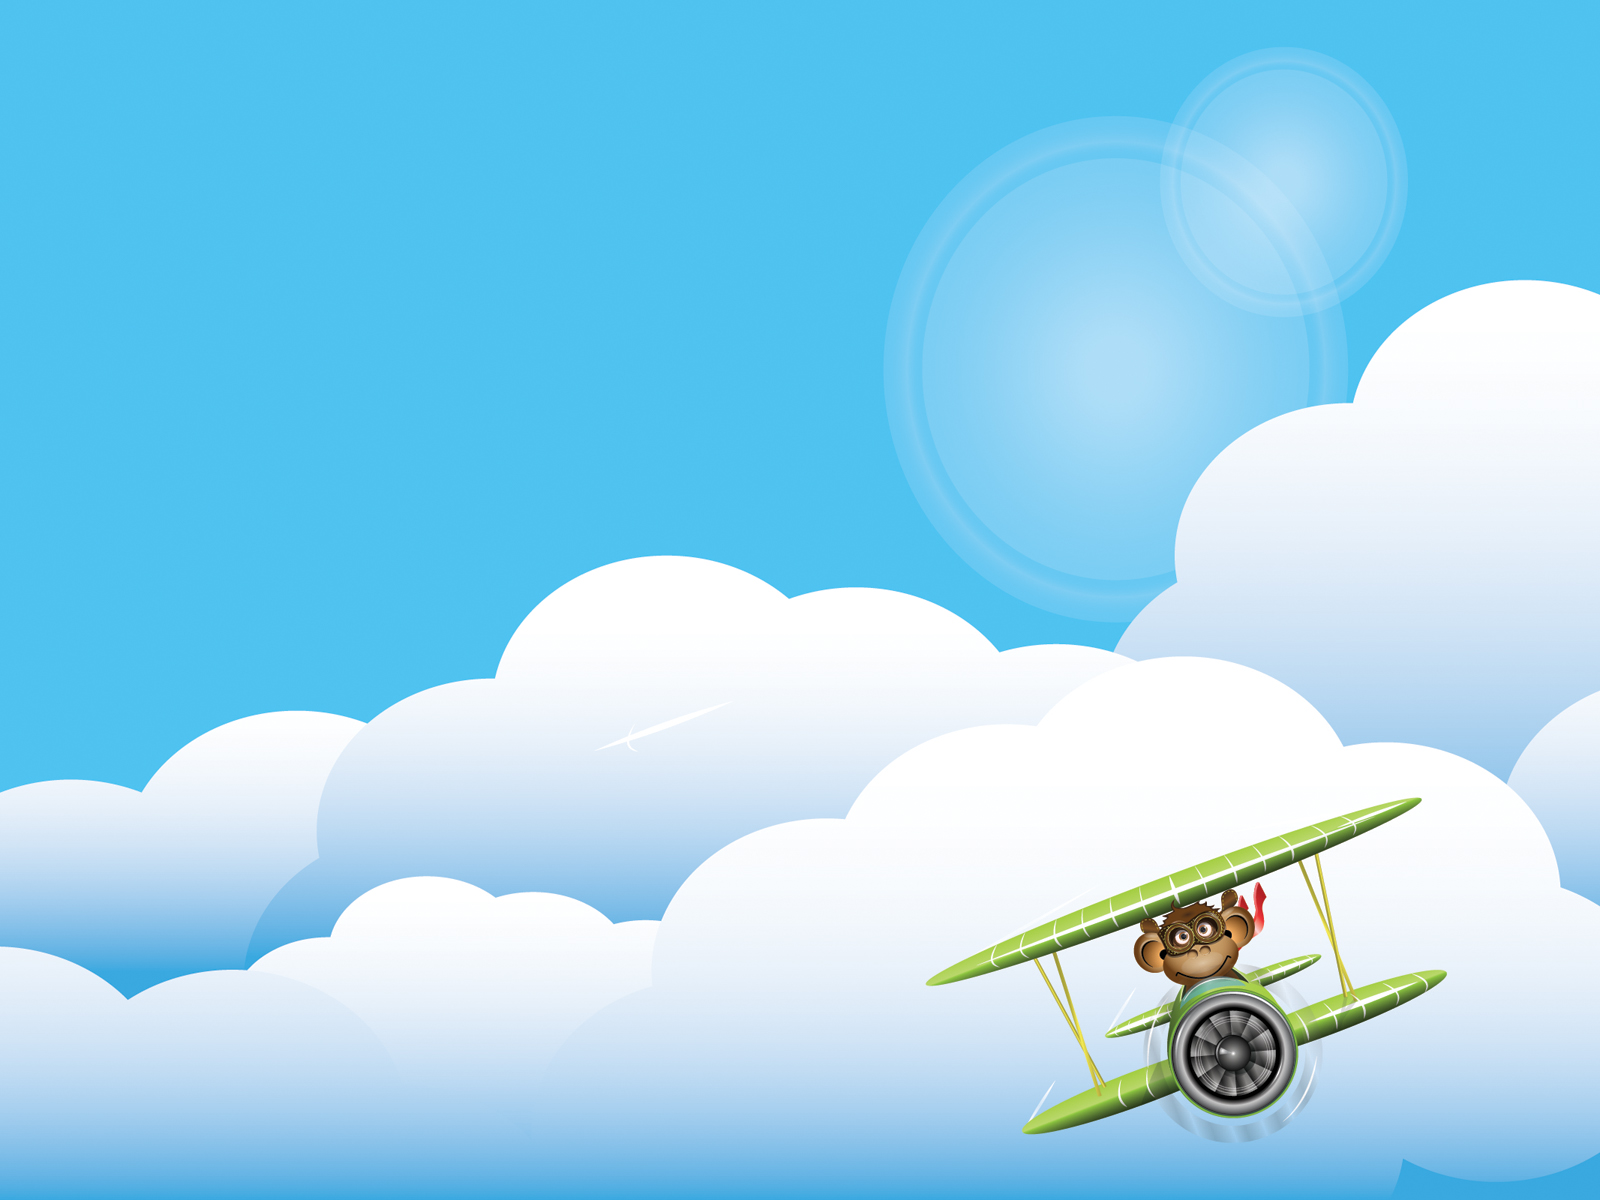 cartoon plane template with 2174 Pla  Monkey Transportation Backgrounds on Richie Rich Cartoon Wallpaper as well Boy With Toy Boat 608564 additionally Index Id News Sc National Byo 3366 moreover Furniture Silhouettes further United Airlines Logo   2513.